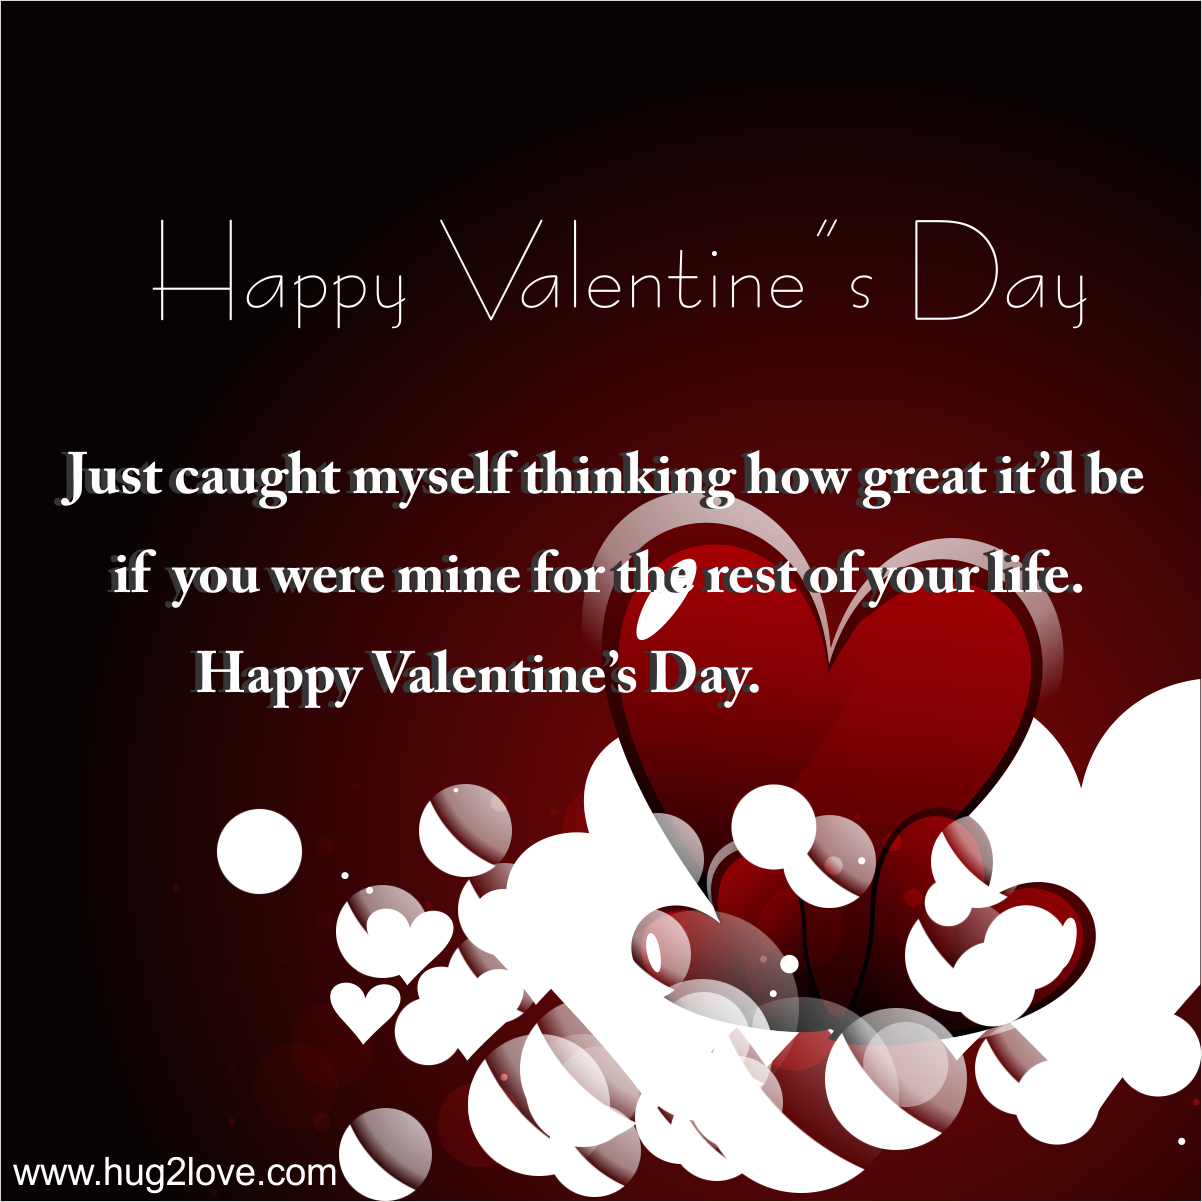 Valentines Day Quotes For Him Famous Valentines Day Quotes For Him  Valentine Day Images With Name